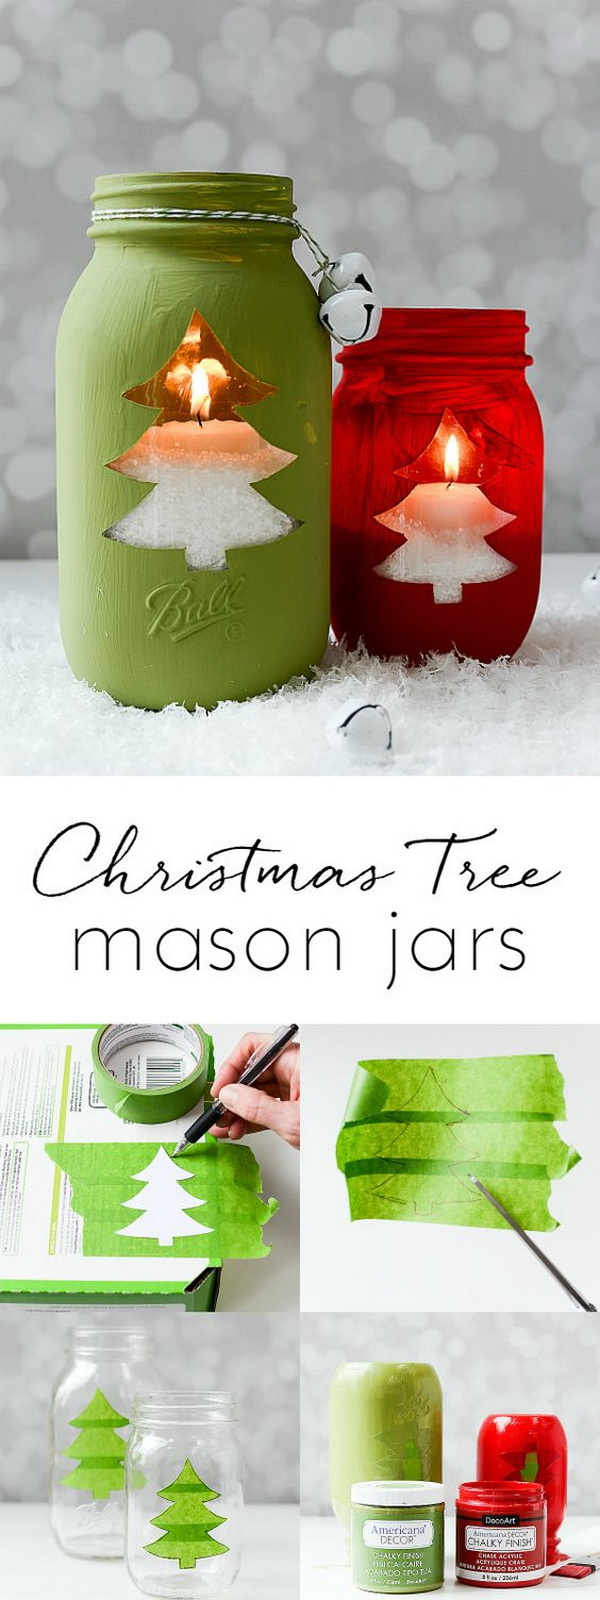 40 Frugal And Festive Diy Dollar Store Christmas Decoration Ideas Listing More